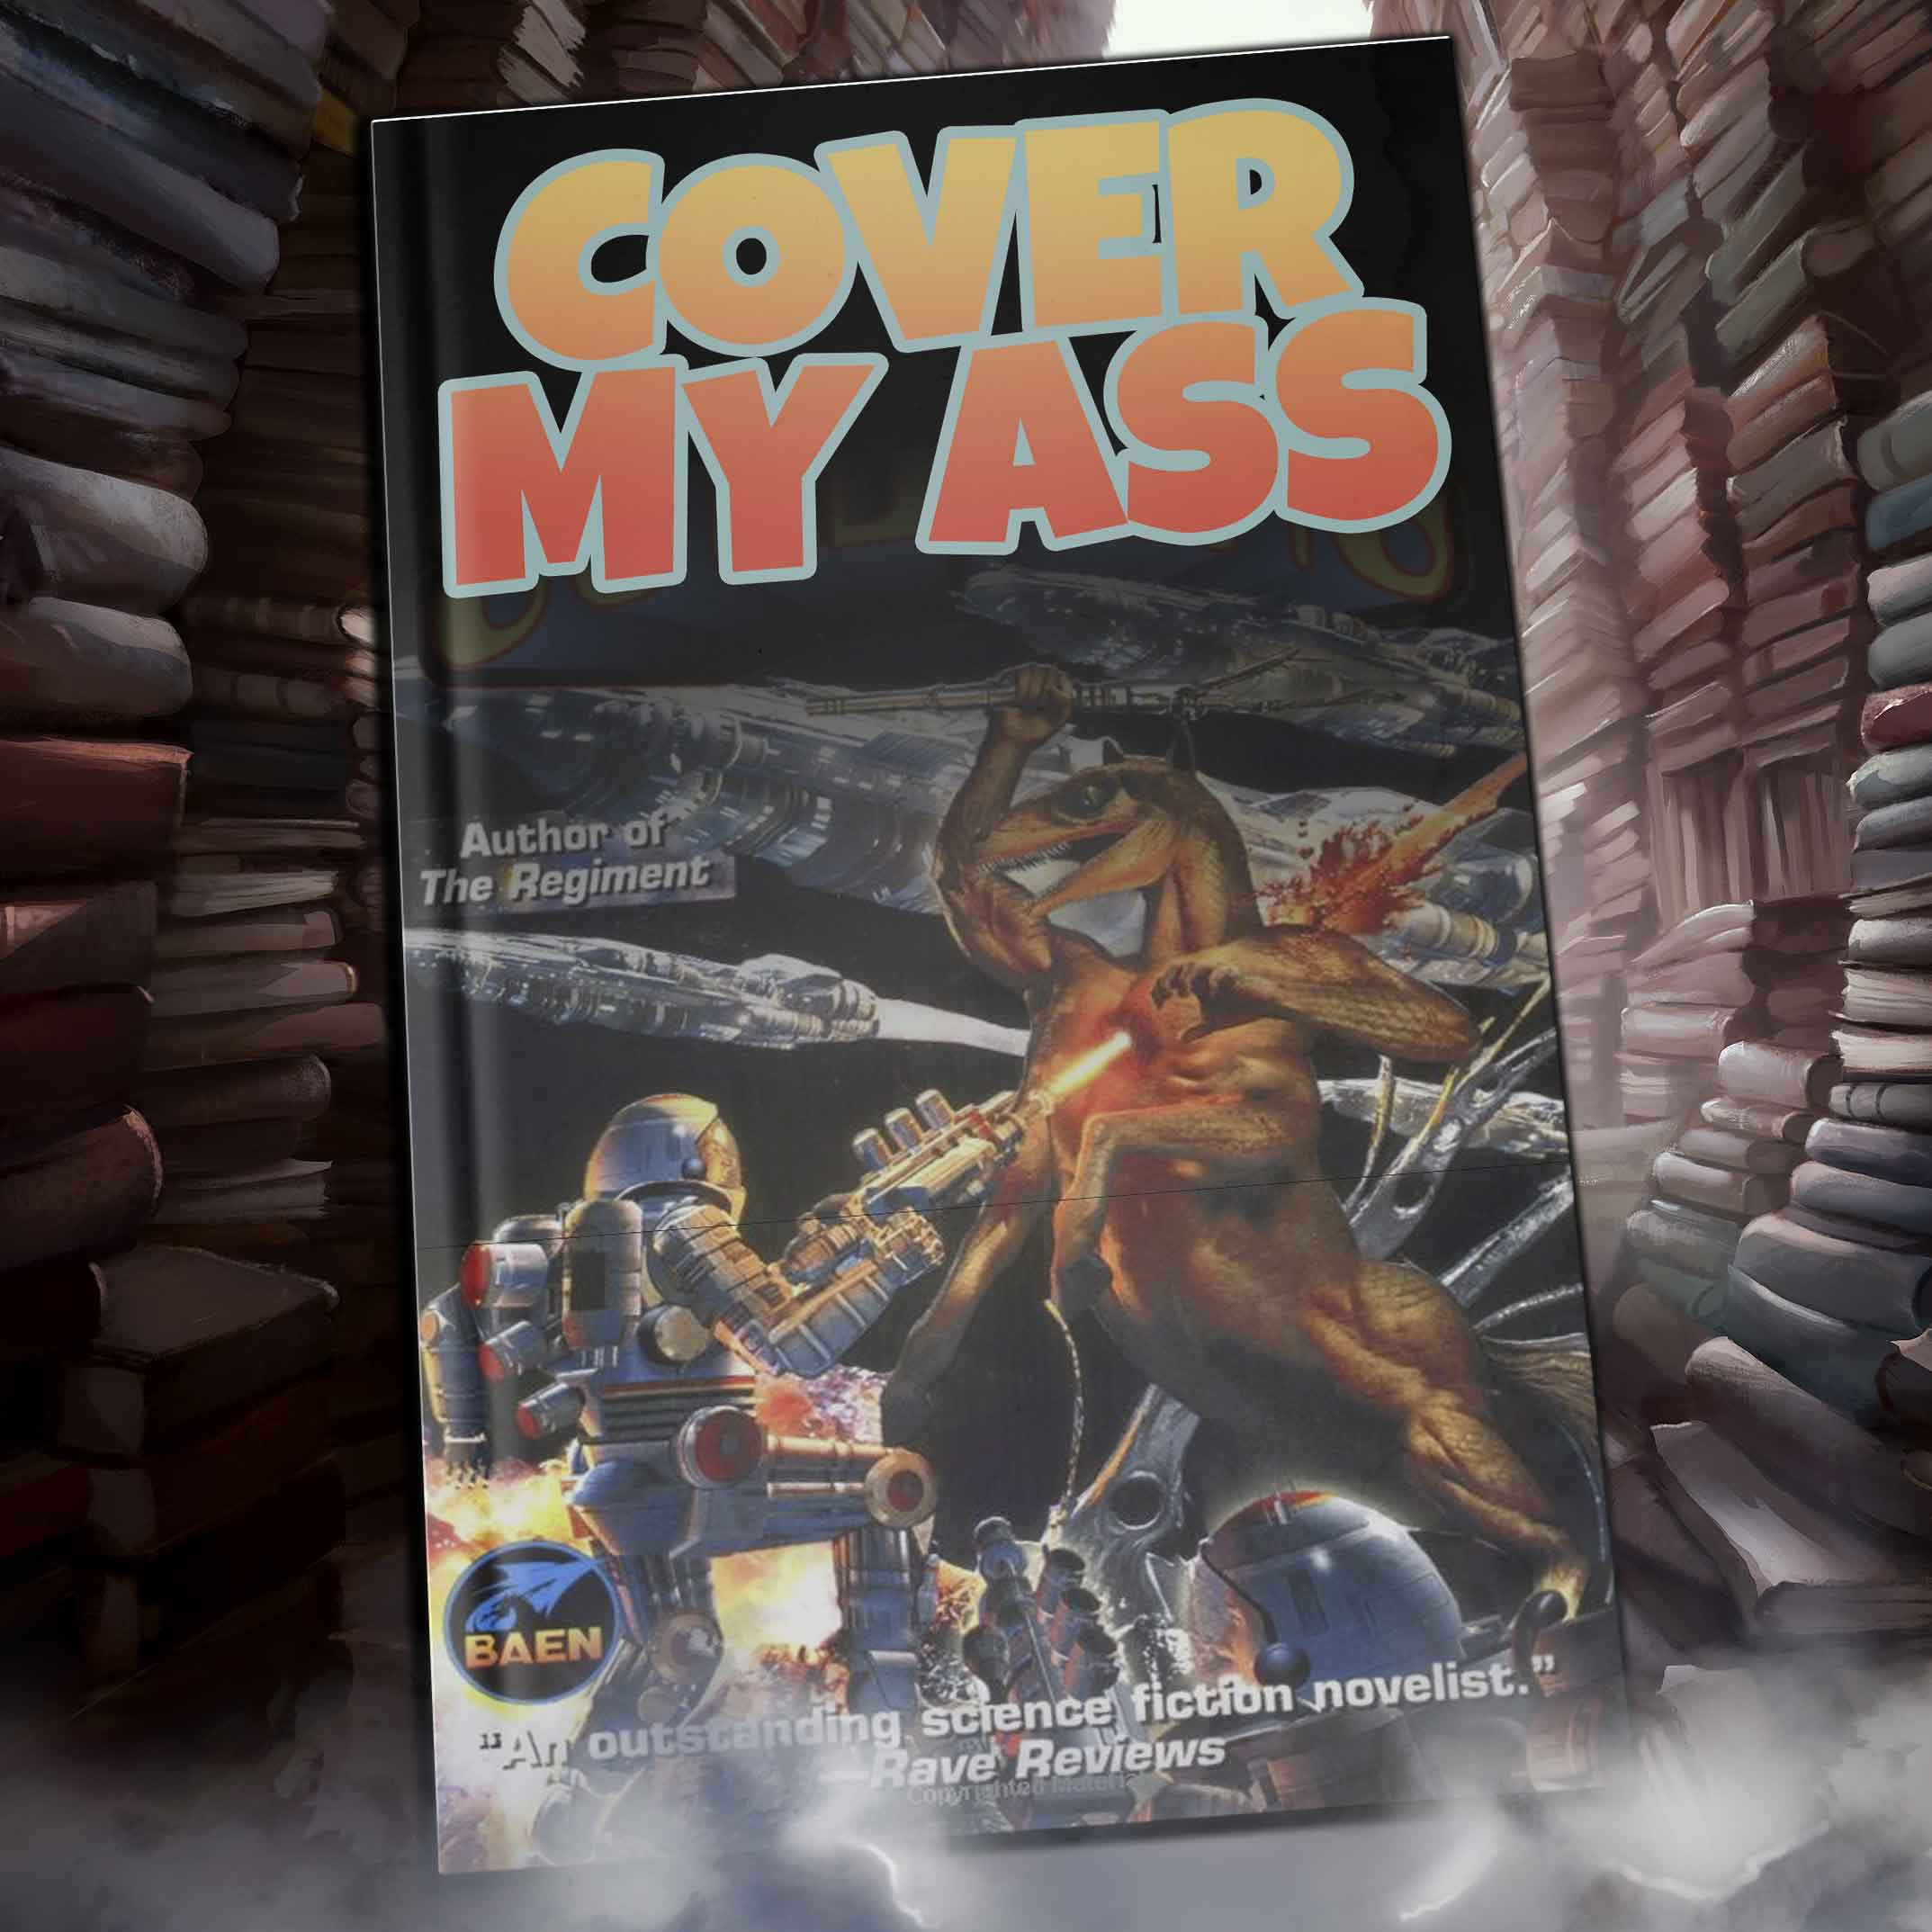 Show artwork for Cover My Ass